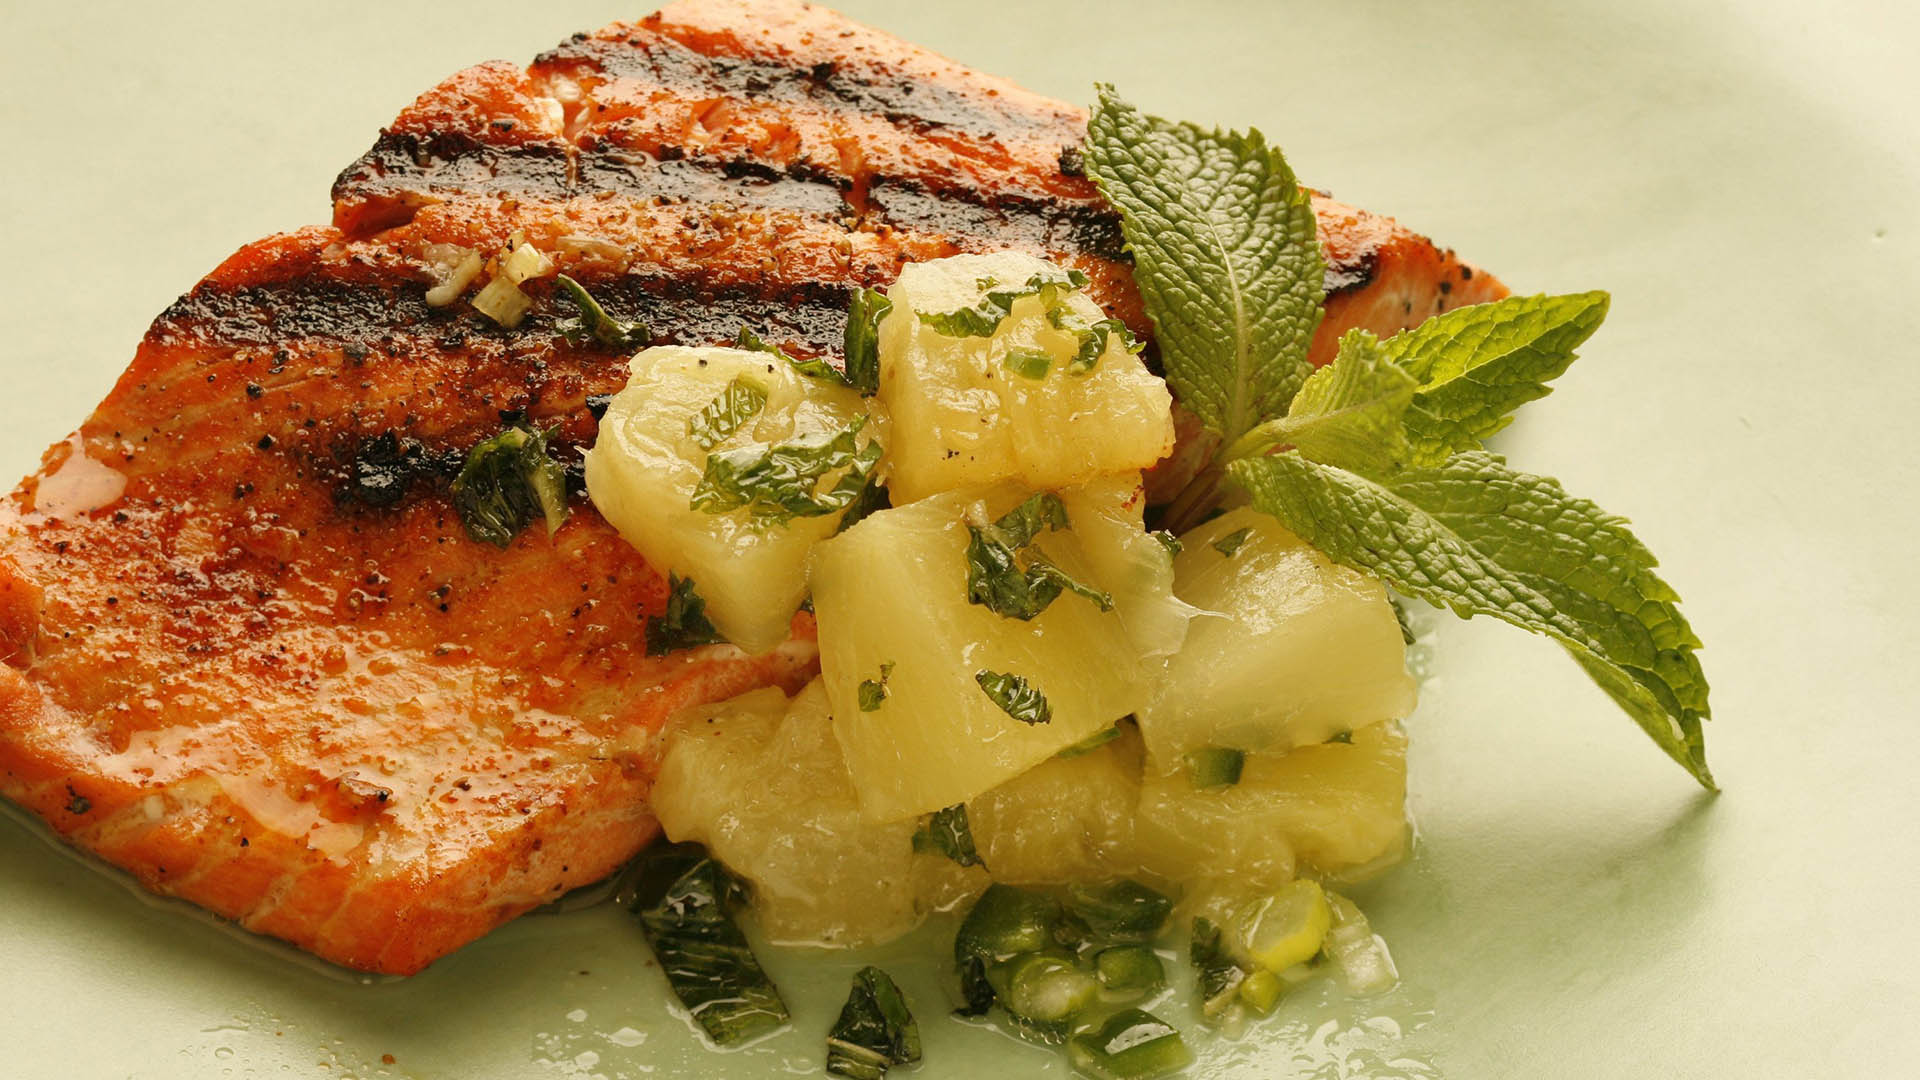 Image #: 29284543    Salmon by itself can handle nearly any color of wine. Light red, white, pink, all will do. The style of wine is more important. Here, the salmon is slathered with pineapple salsa that, from a wine's point of view, is a lot of sweetness and acidity (from especially the pineapple and lime juice). Chili heat also warns against wines high in alcohol. (Chris Walker/Chicago Tribune/MCT)      Chicago Tribune/ MCT /LANDOV